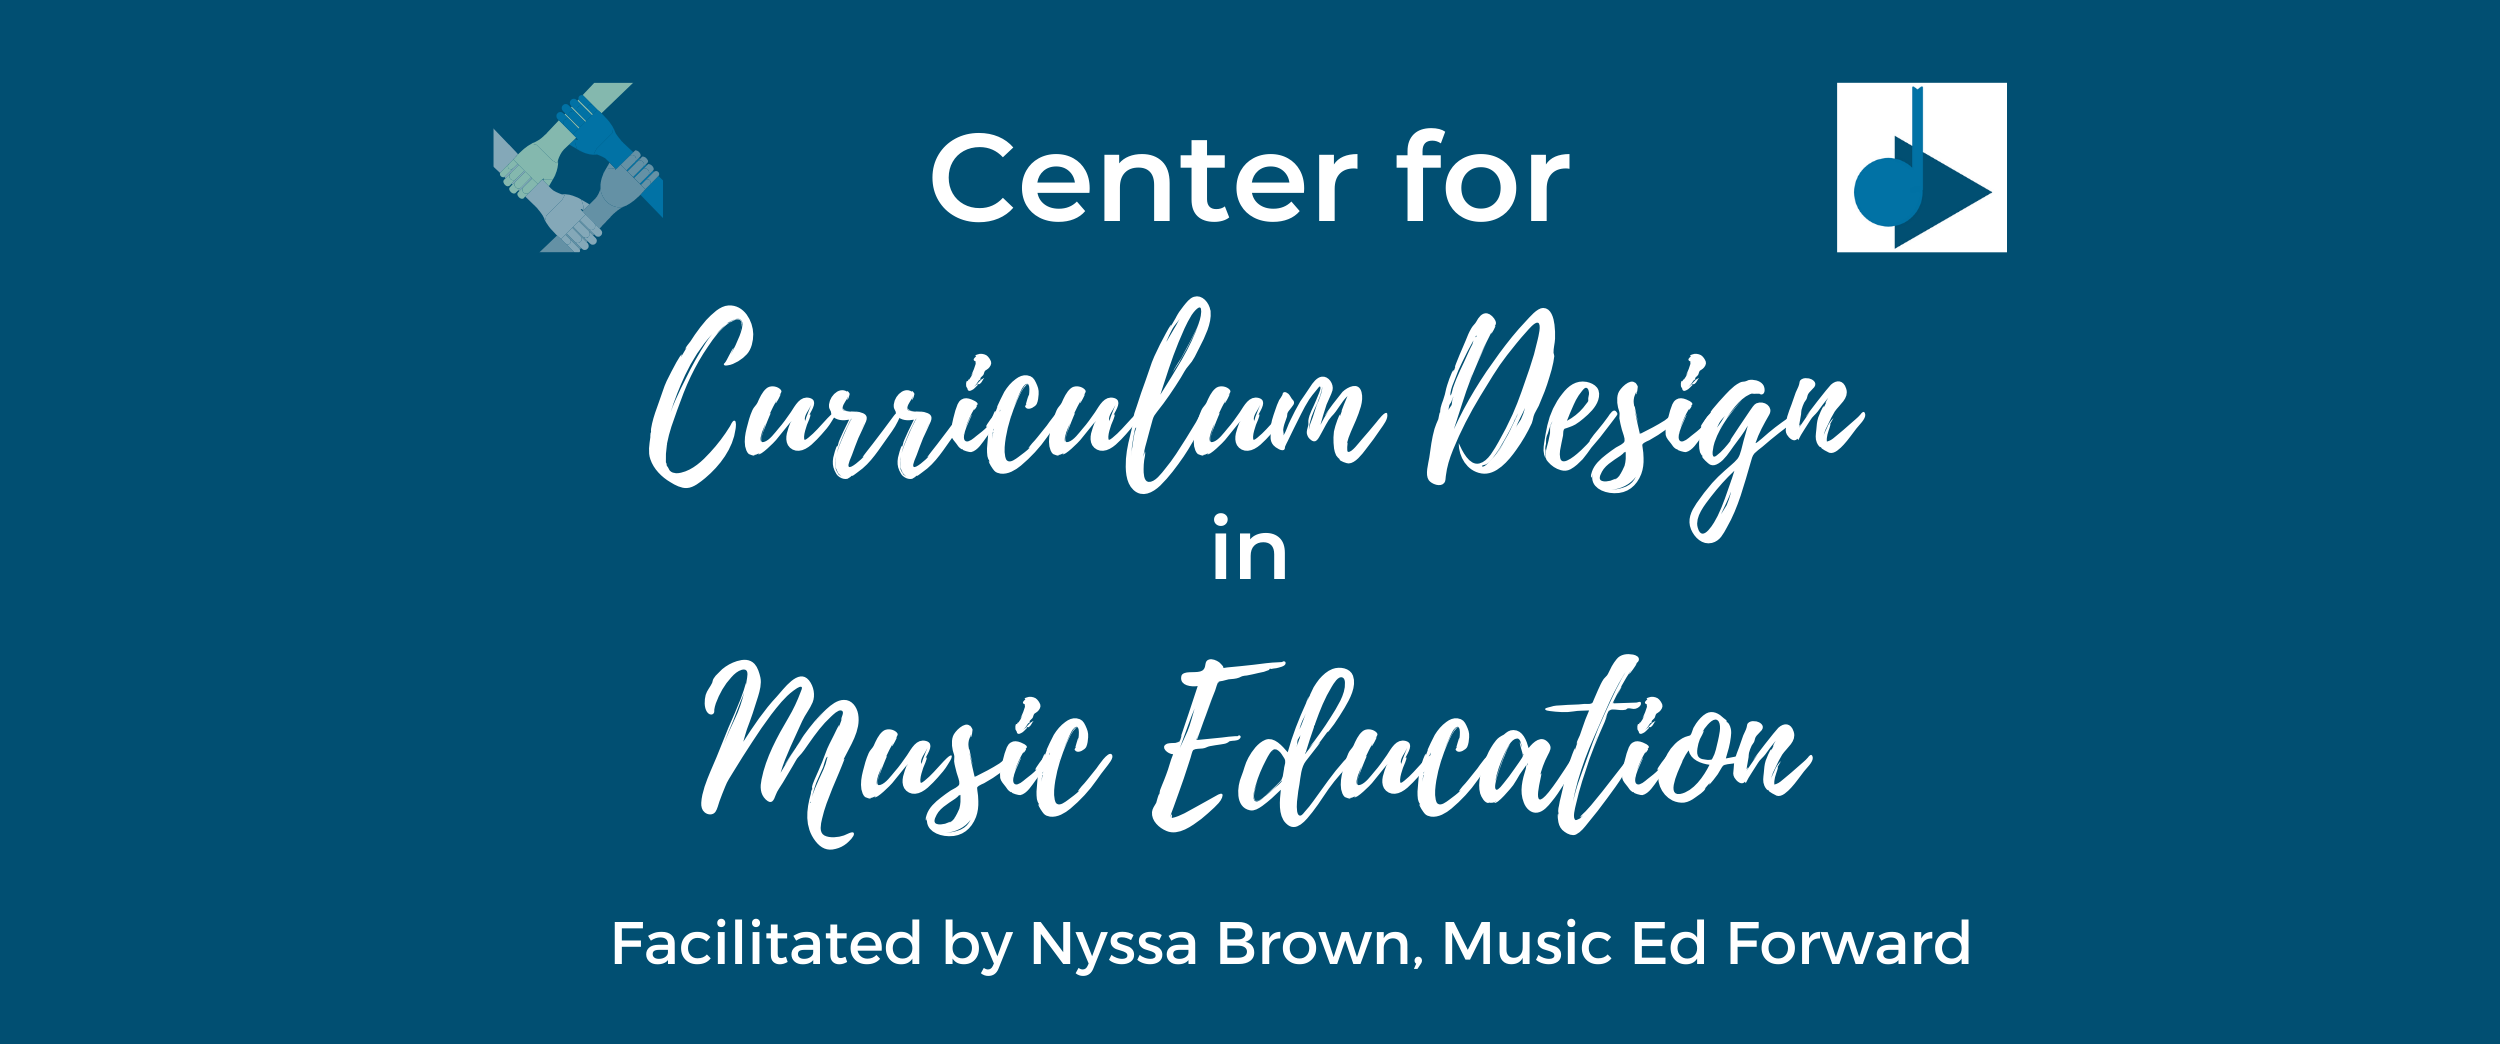 MEF Online Academy - If you are looking for the highest quality professional development for music teachers and educational leaders - you're in the right place!